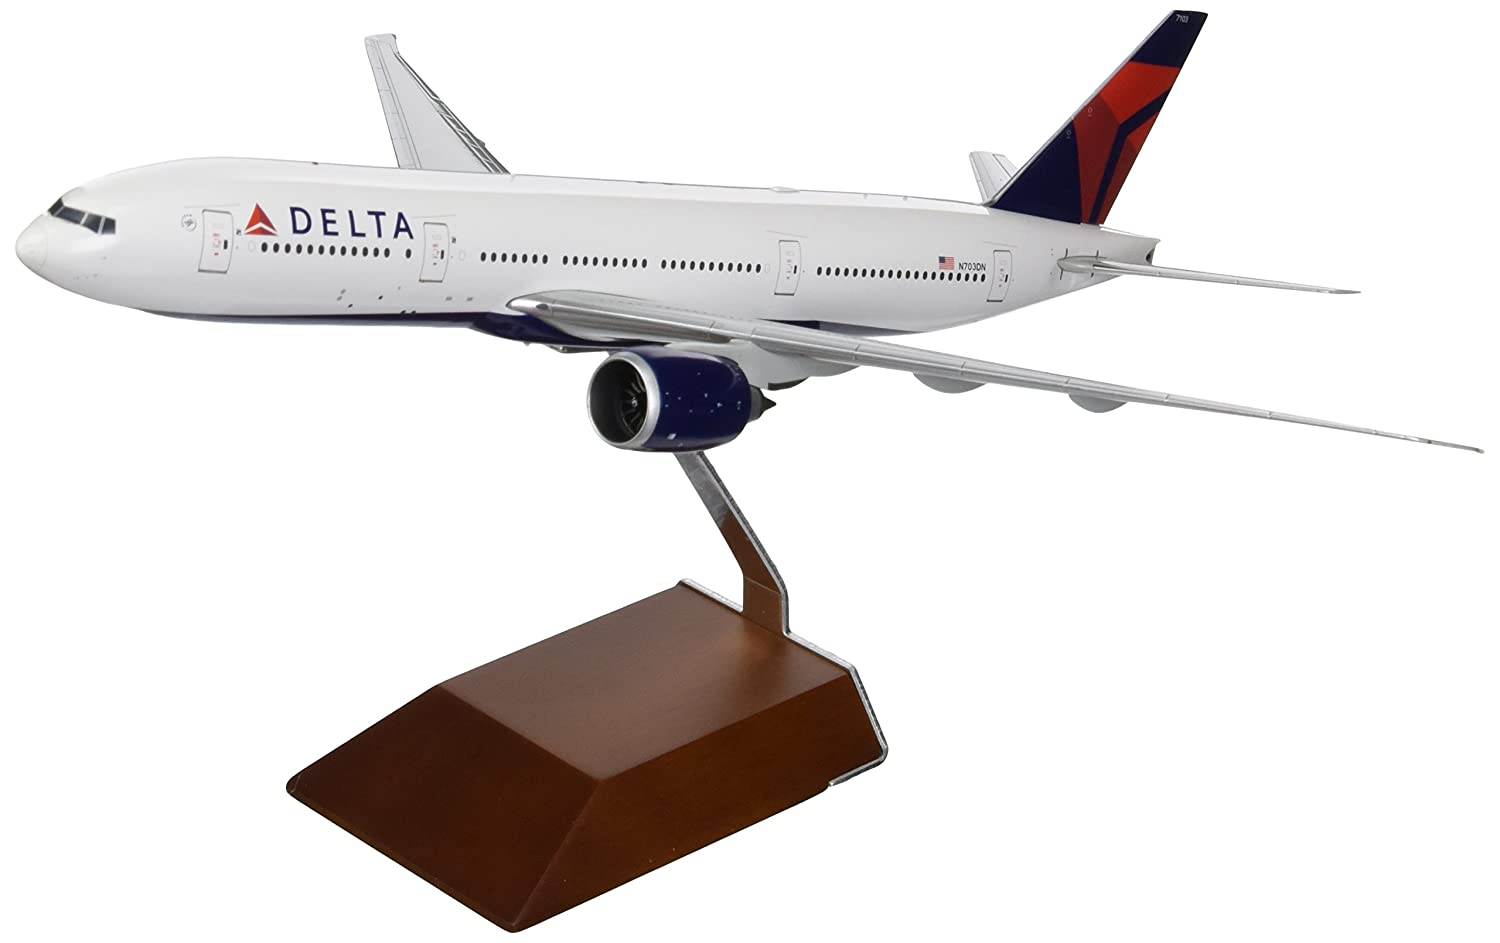 Gemini200Delta B777-200LR B777-200LR B777-200LR 1:200 Scale Vehicle 17e510